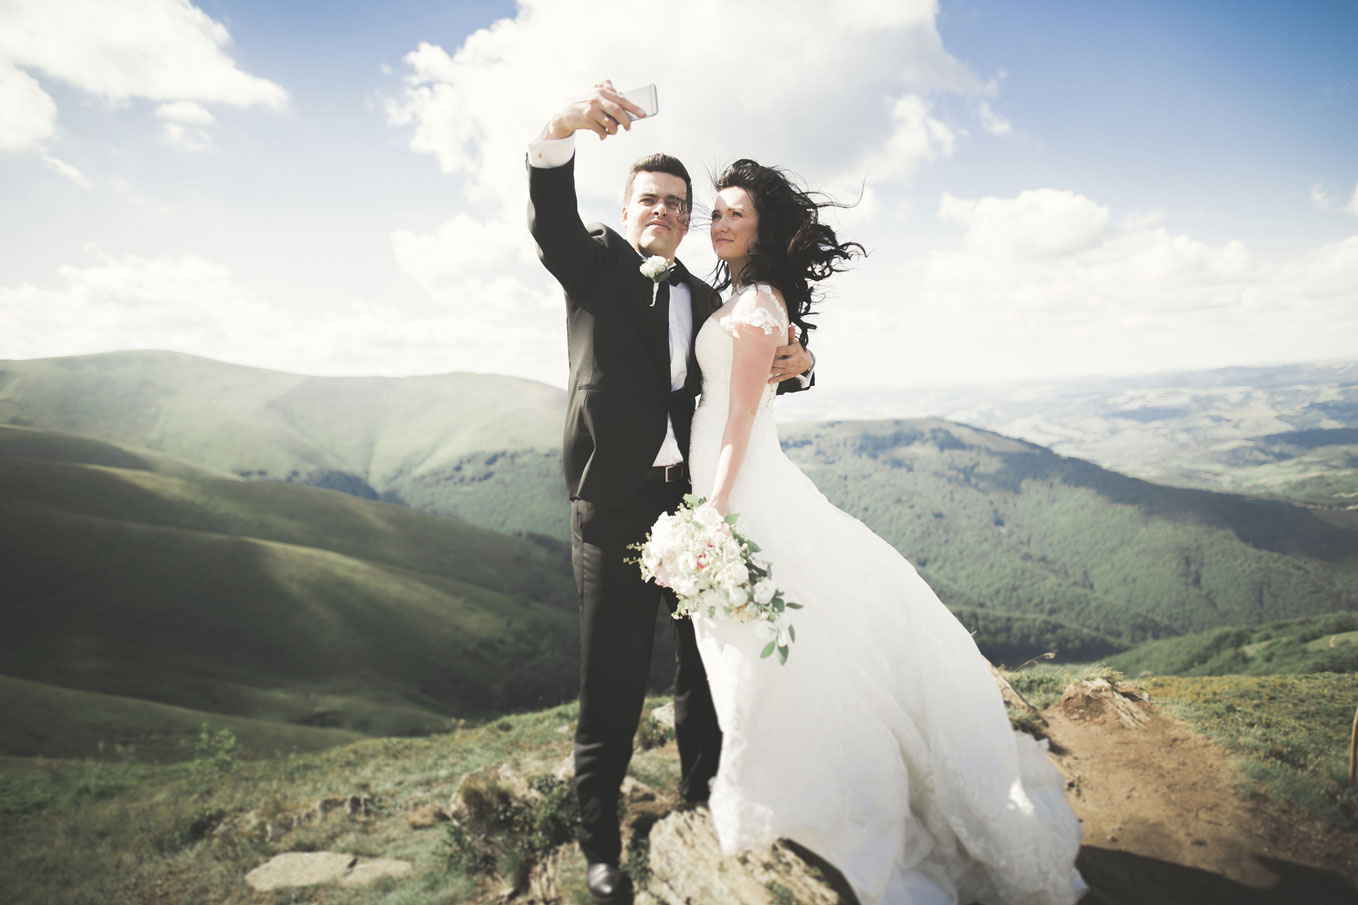 Just-married-couple-on-top-of-the-mountain-taking-selfie-000103428107_Medium.jpg